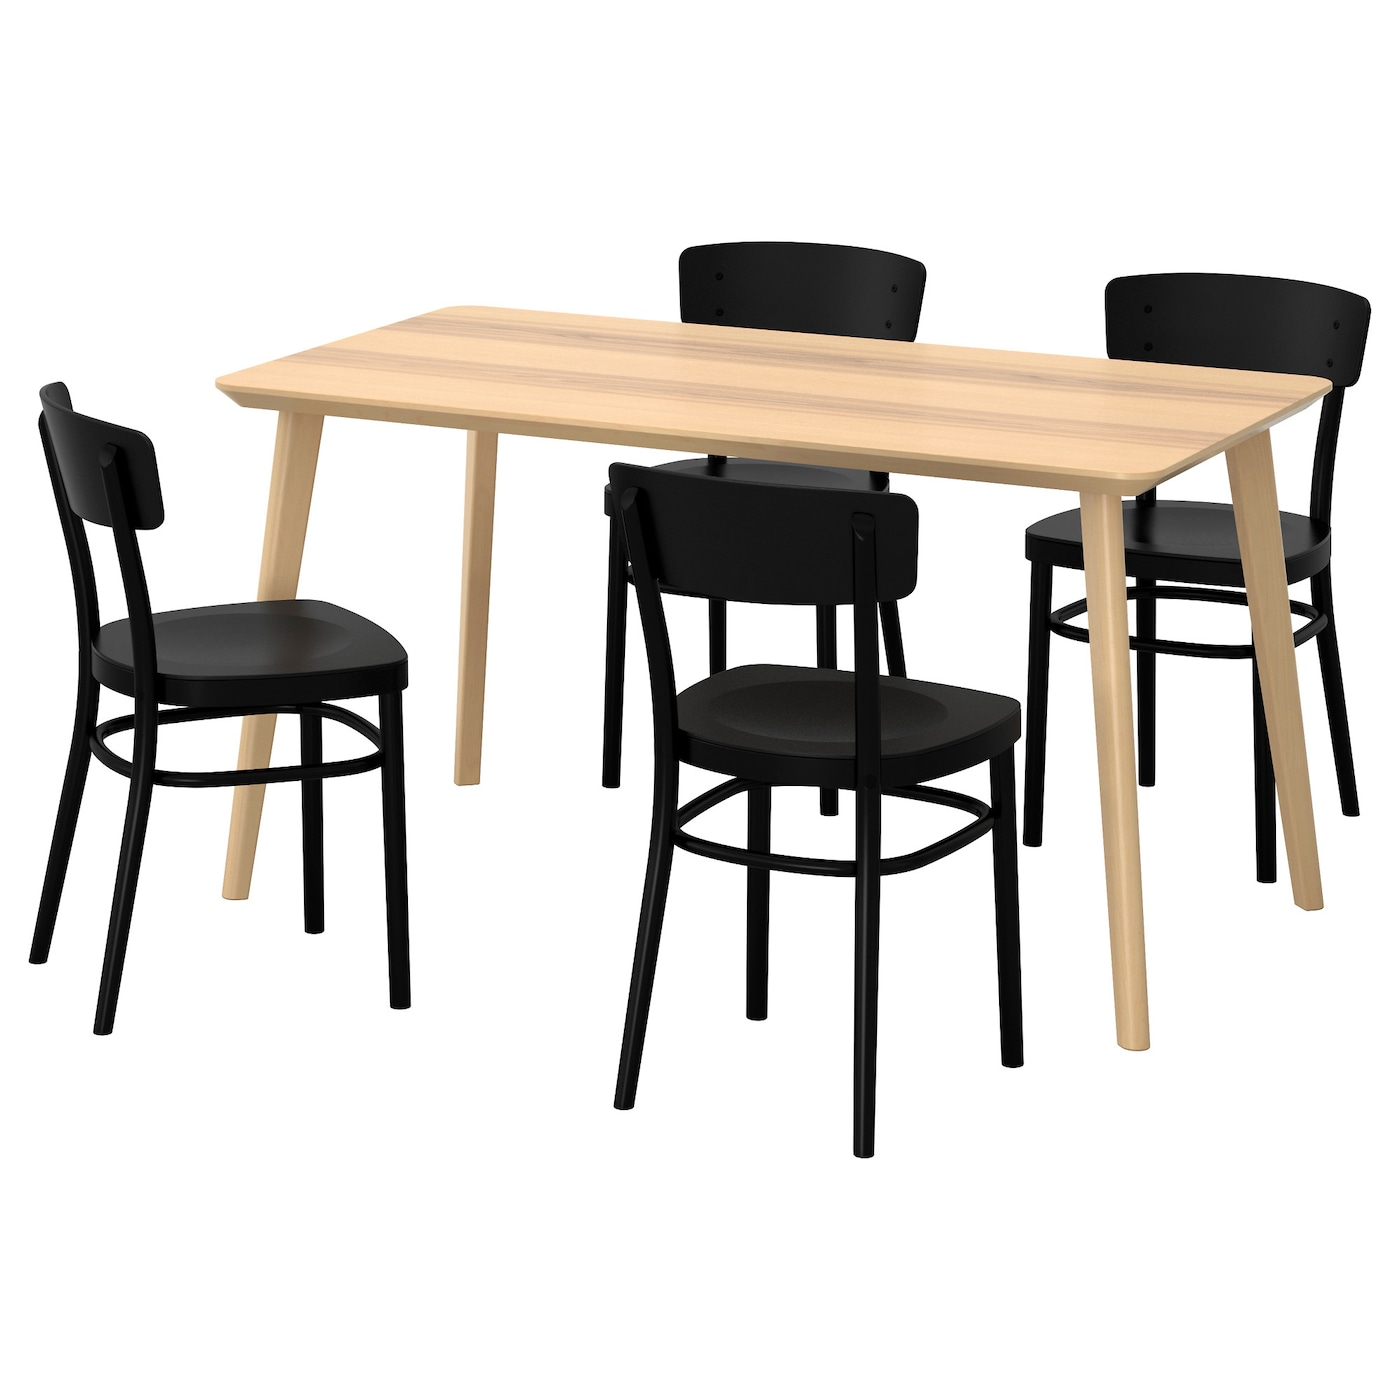 dining table sets dining room sets ikea. Black Bedroom Furniture Sets. Home Design Ideas